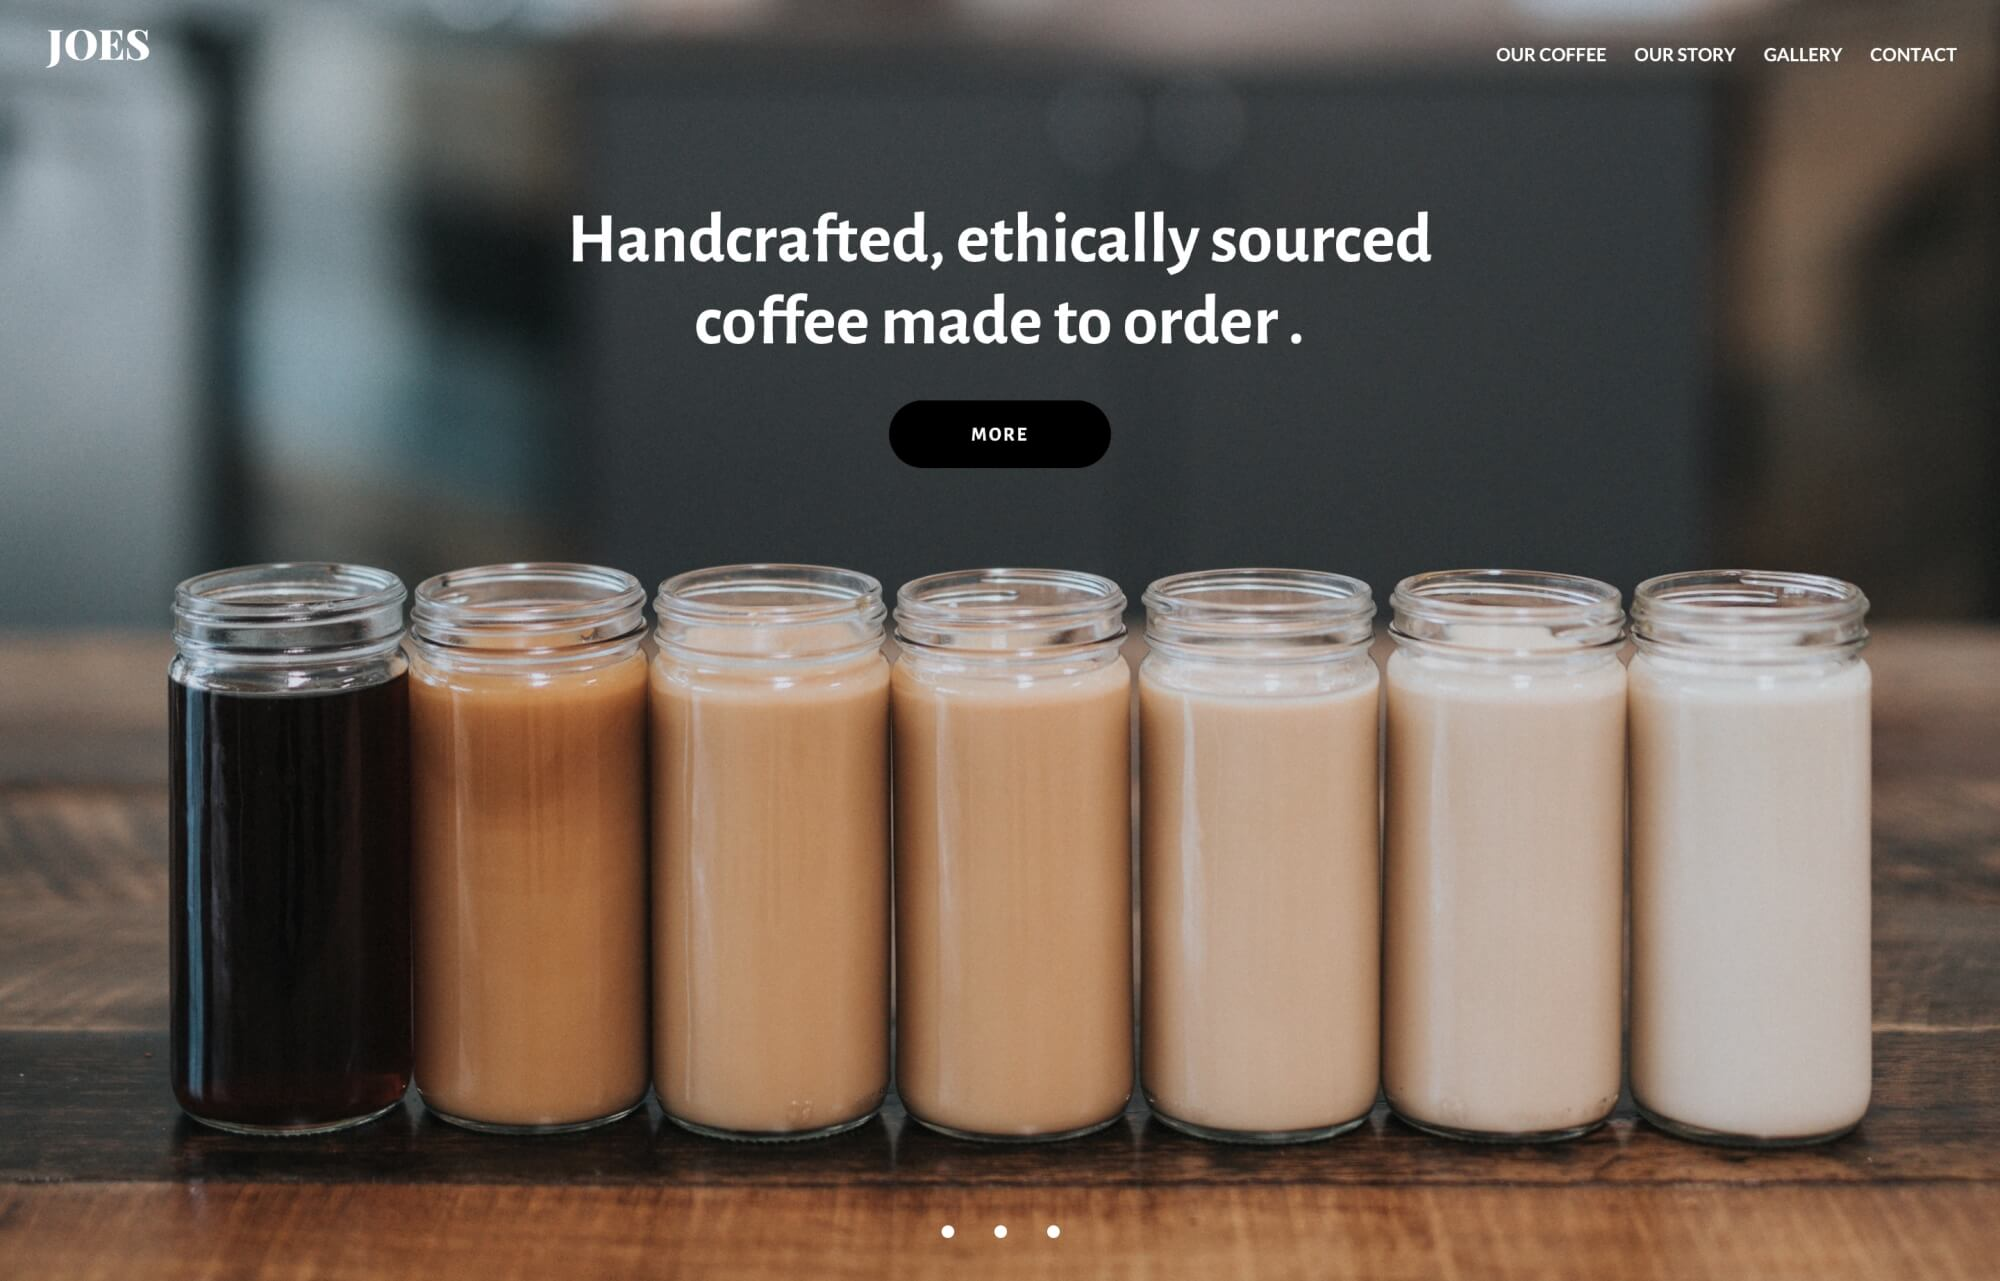 Modular Orange Website for for Joes handcrafted and ethically sourced coffee made to order